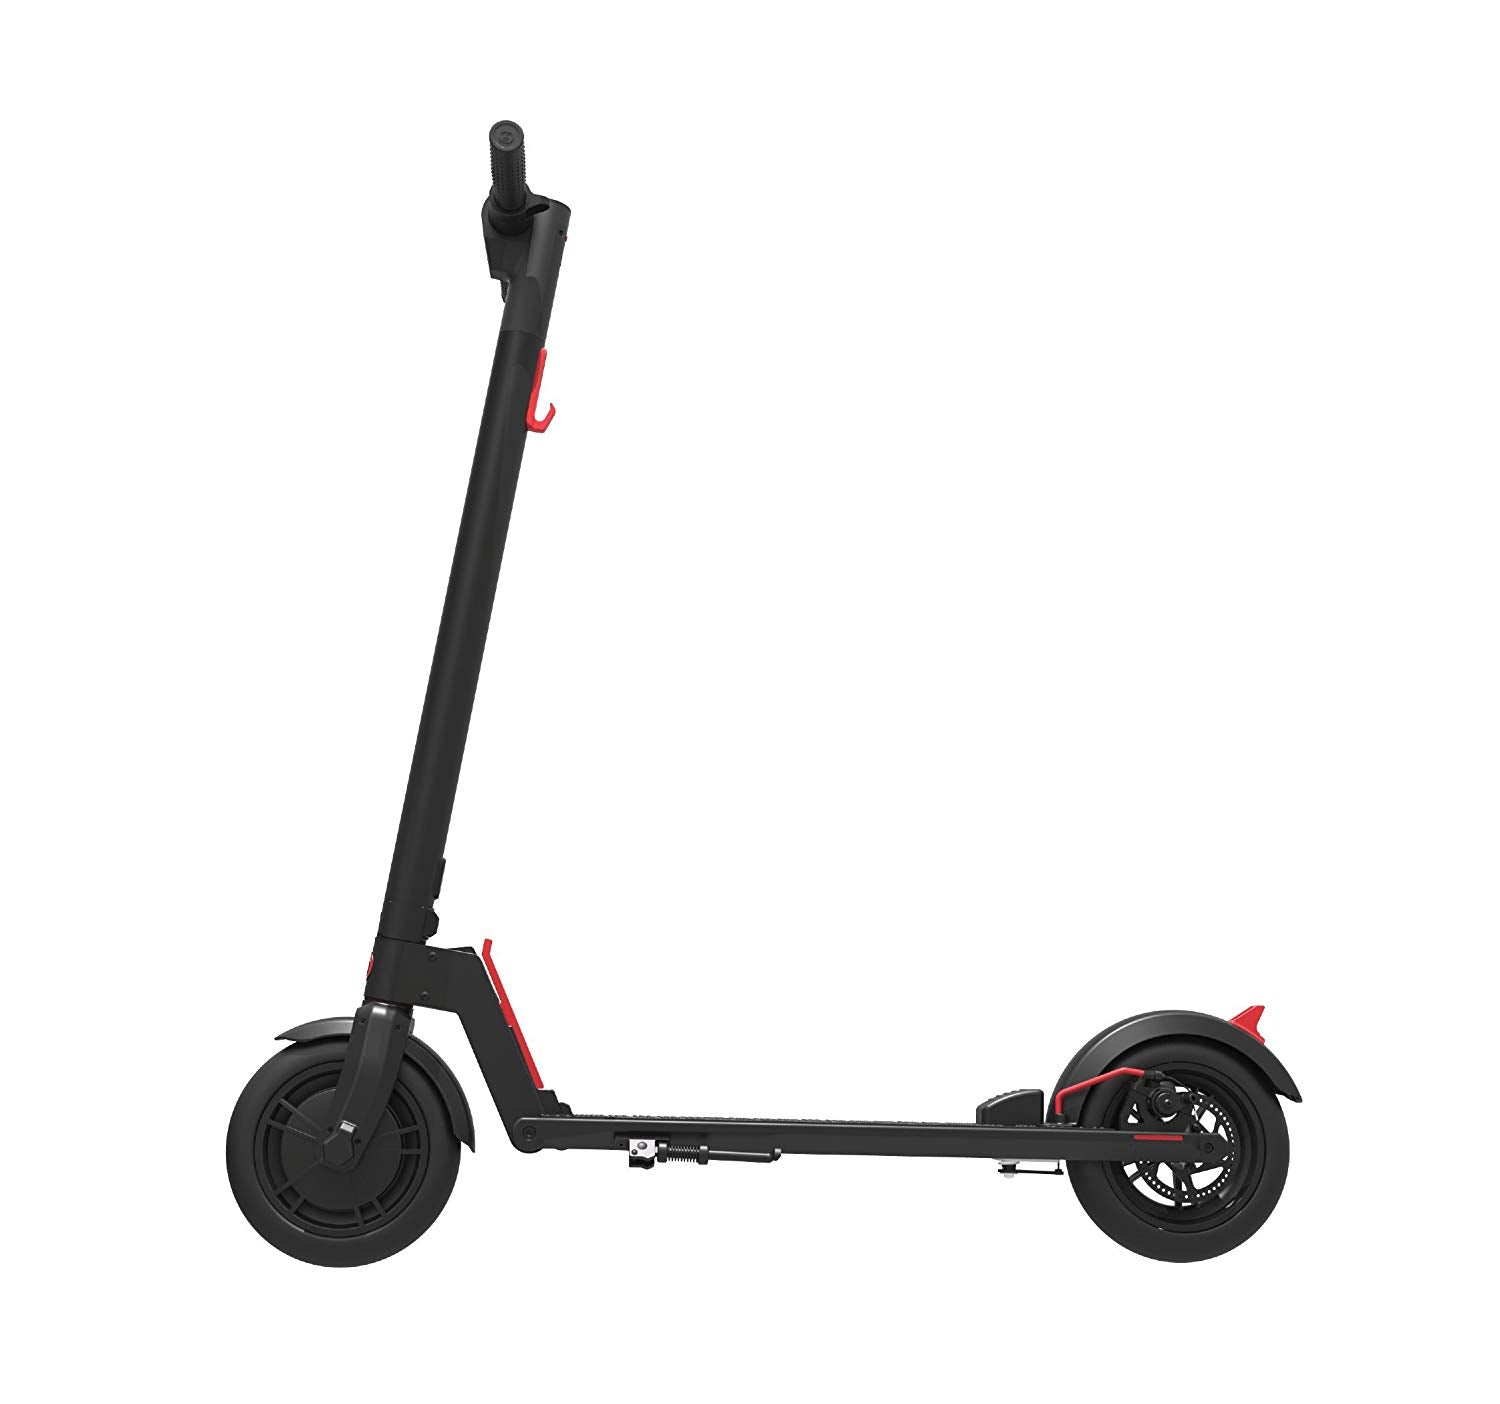 Commuting Electric Scooter - 8.5